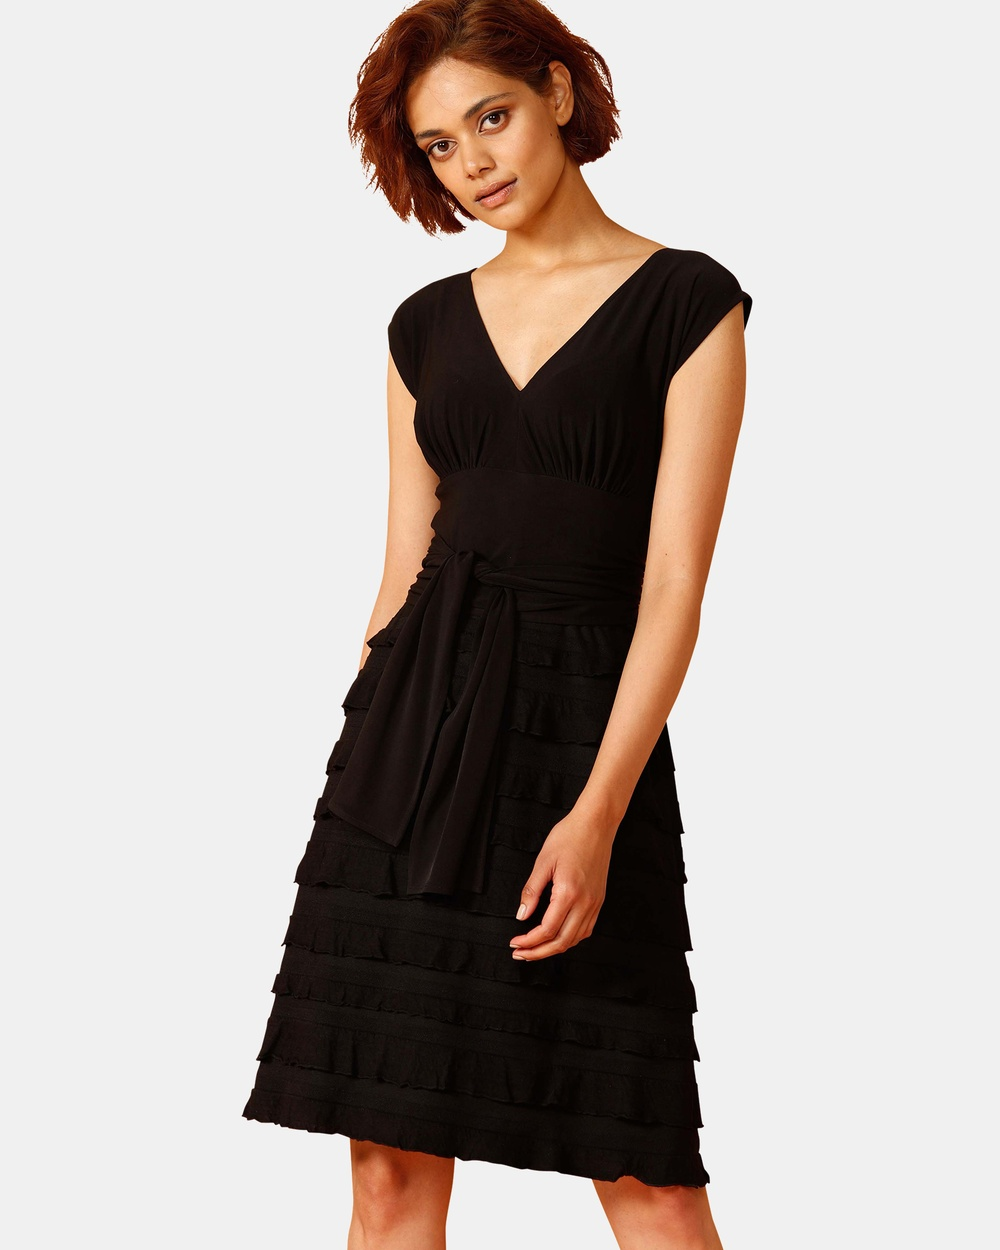 SACHA DRAKE Black V-Neck Ruffle Dress